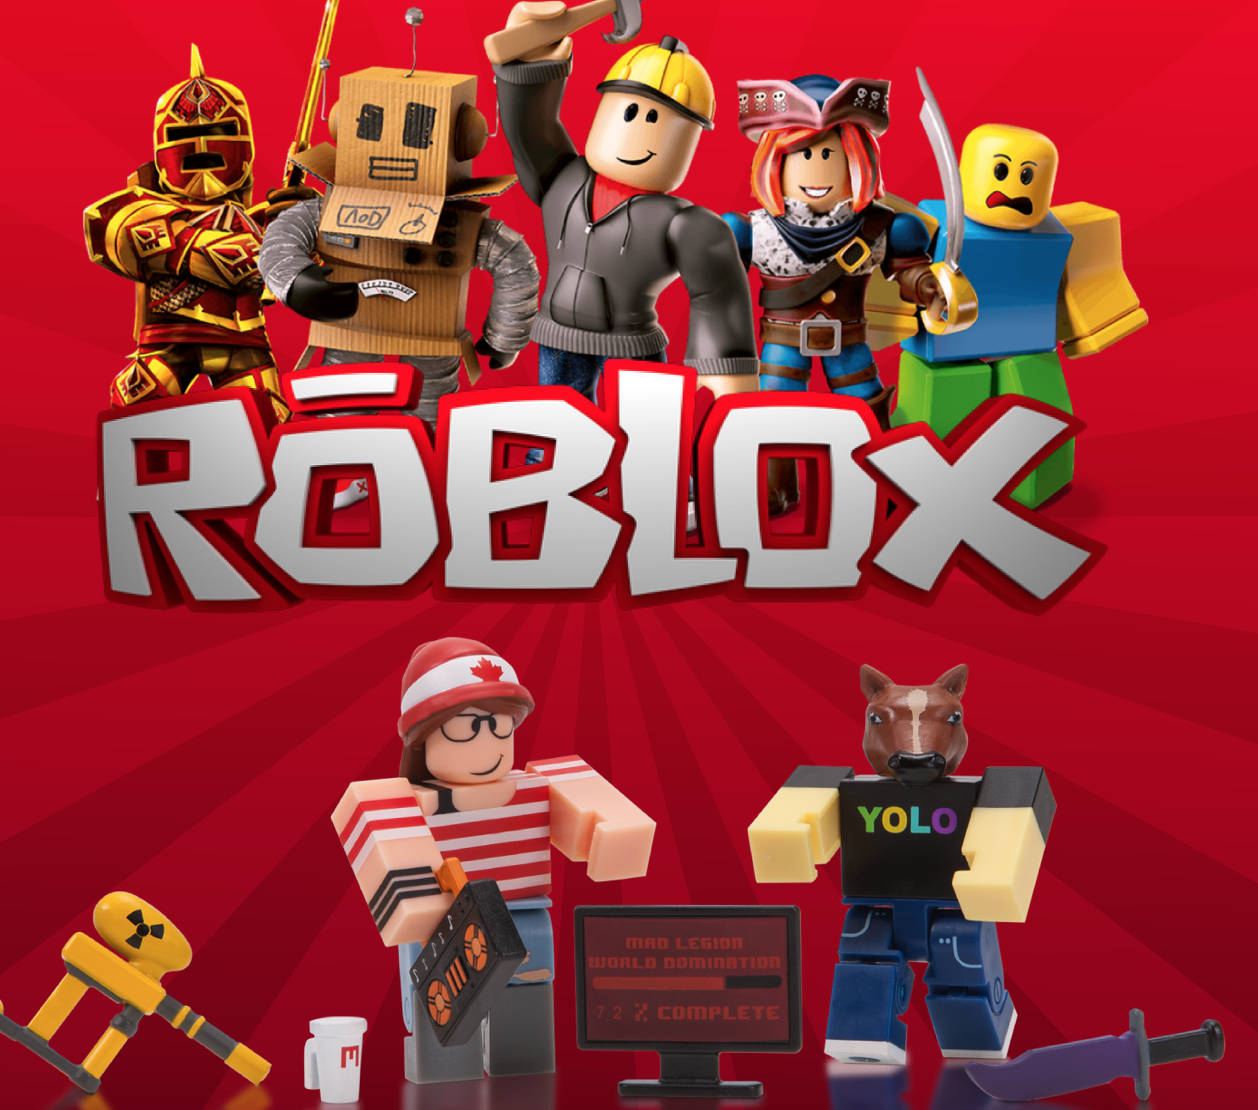 roblox mod apk unlimited robux 2019 download